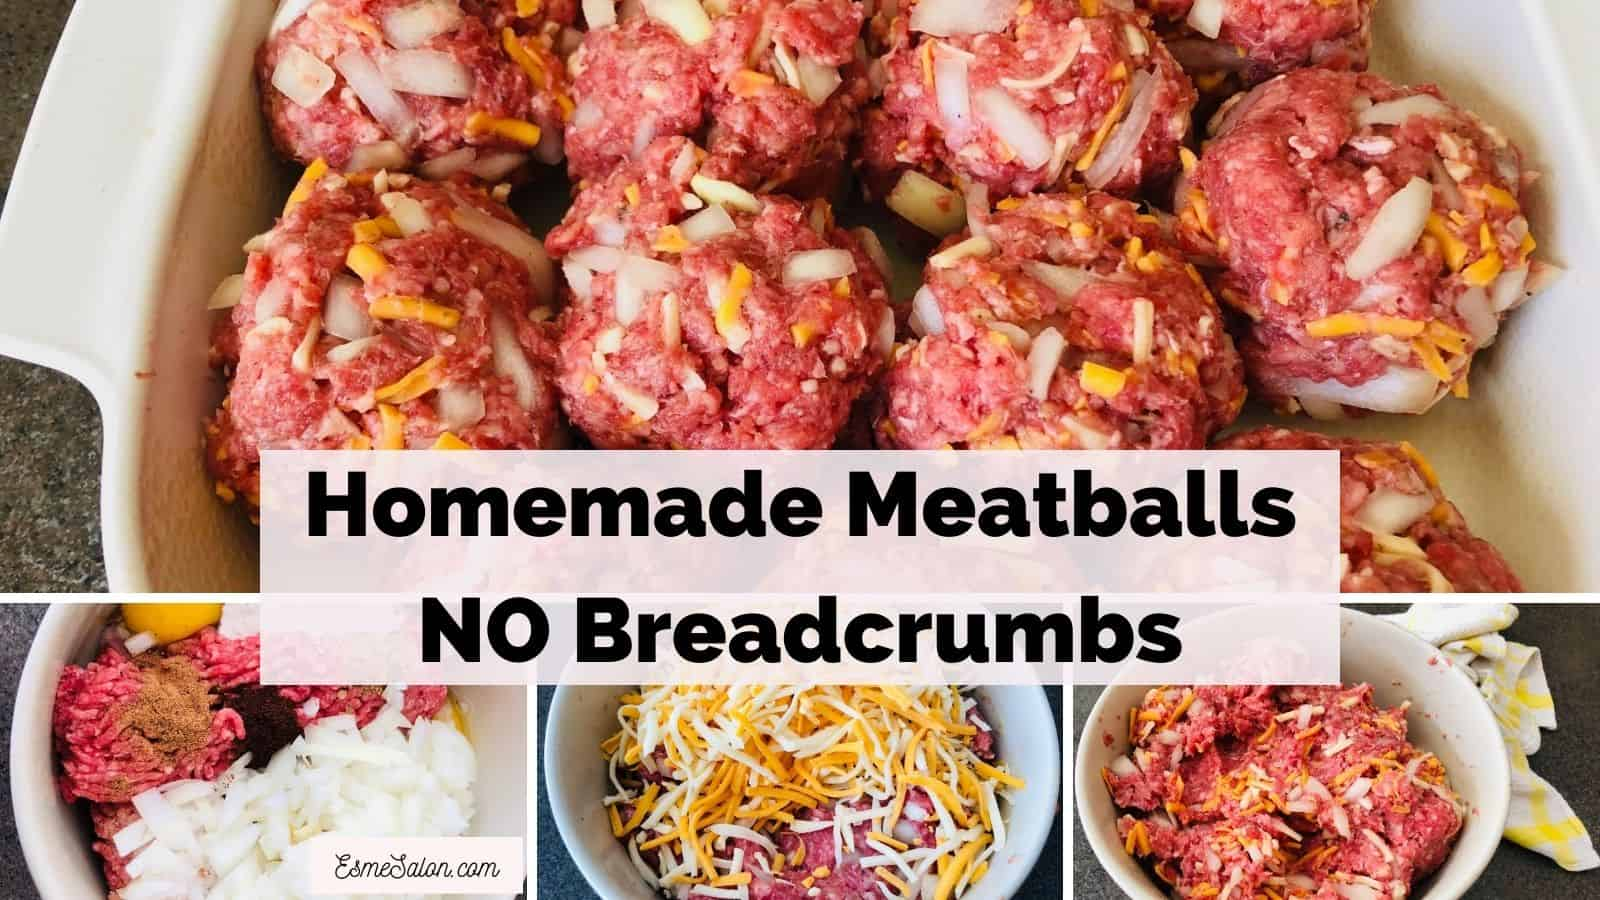 Homemade Meatballs NO Breadcrumbs ready to be baked in oven